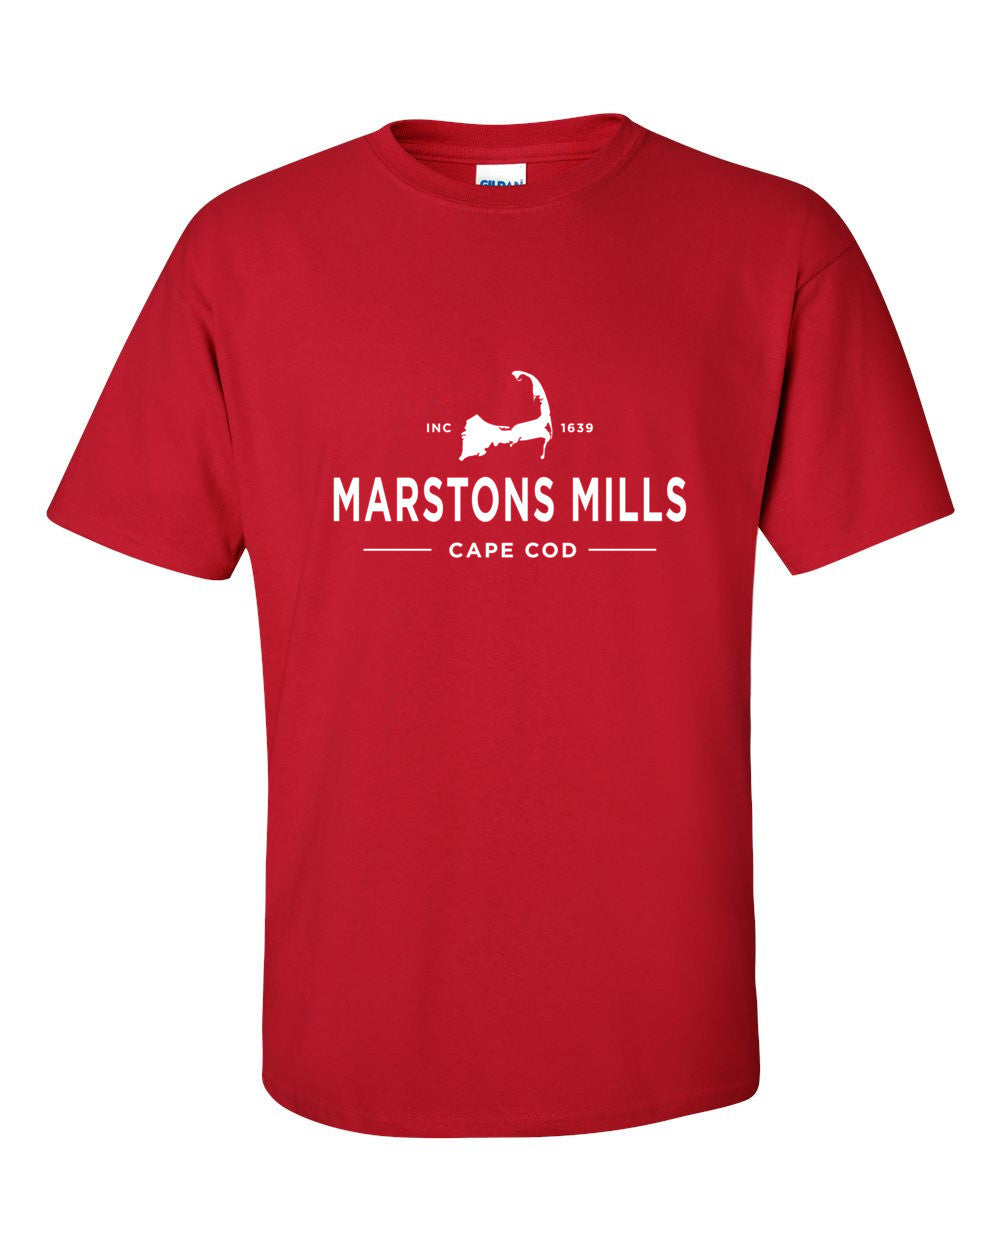 Marstons Mills Cape Cod Short sleeve t-shirt